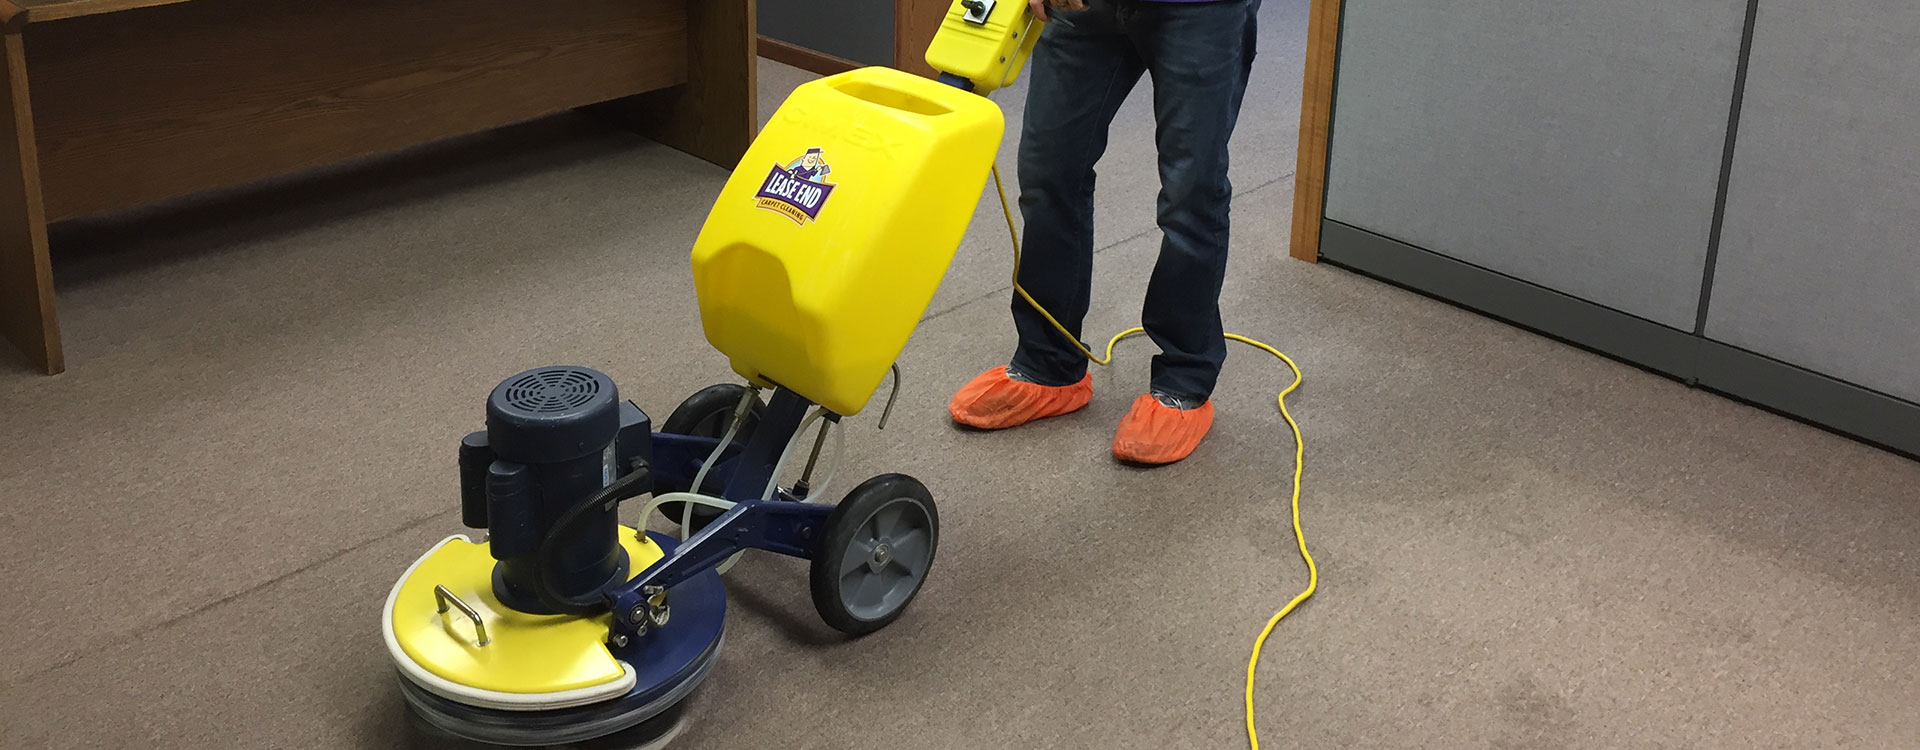 Commercial carpet cleaning in Manhattan, KS